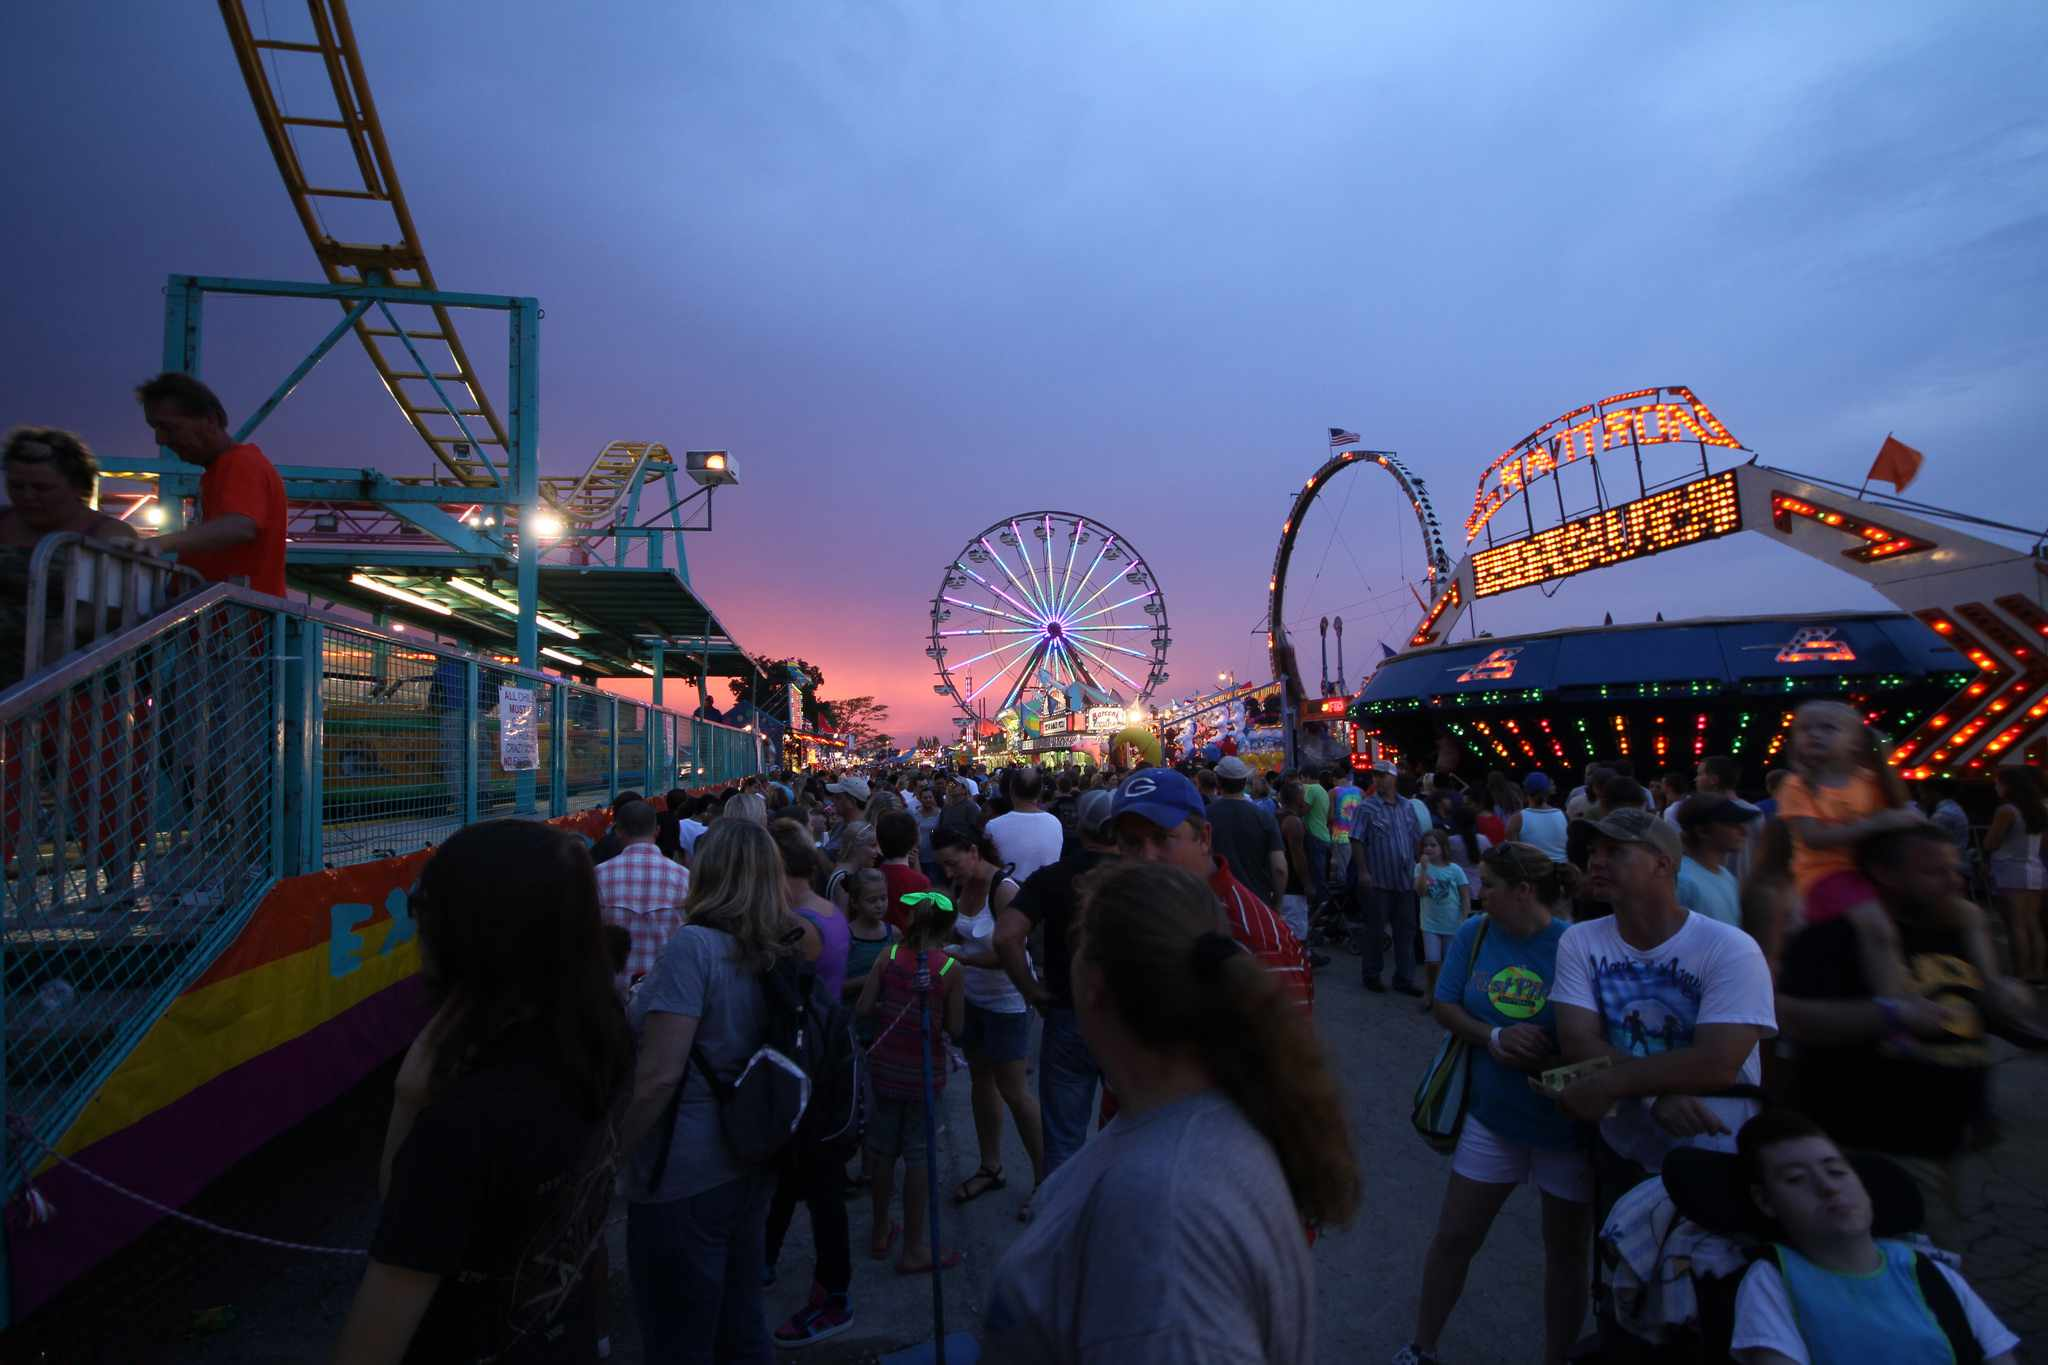 The Wilson County Fair is about 30 miles from Nashville.